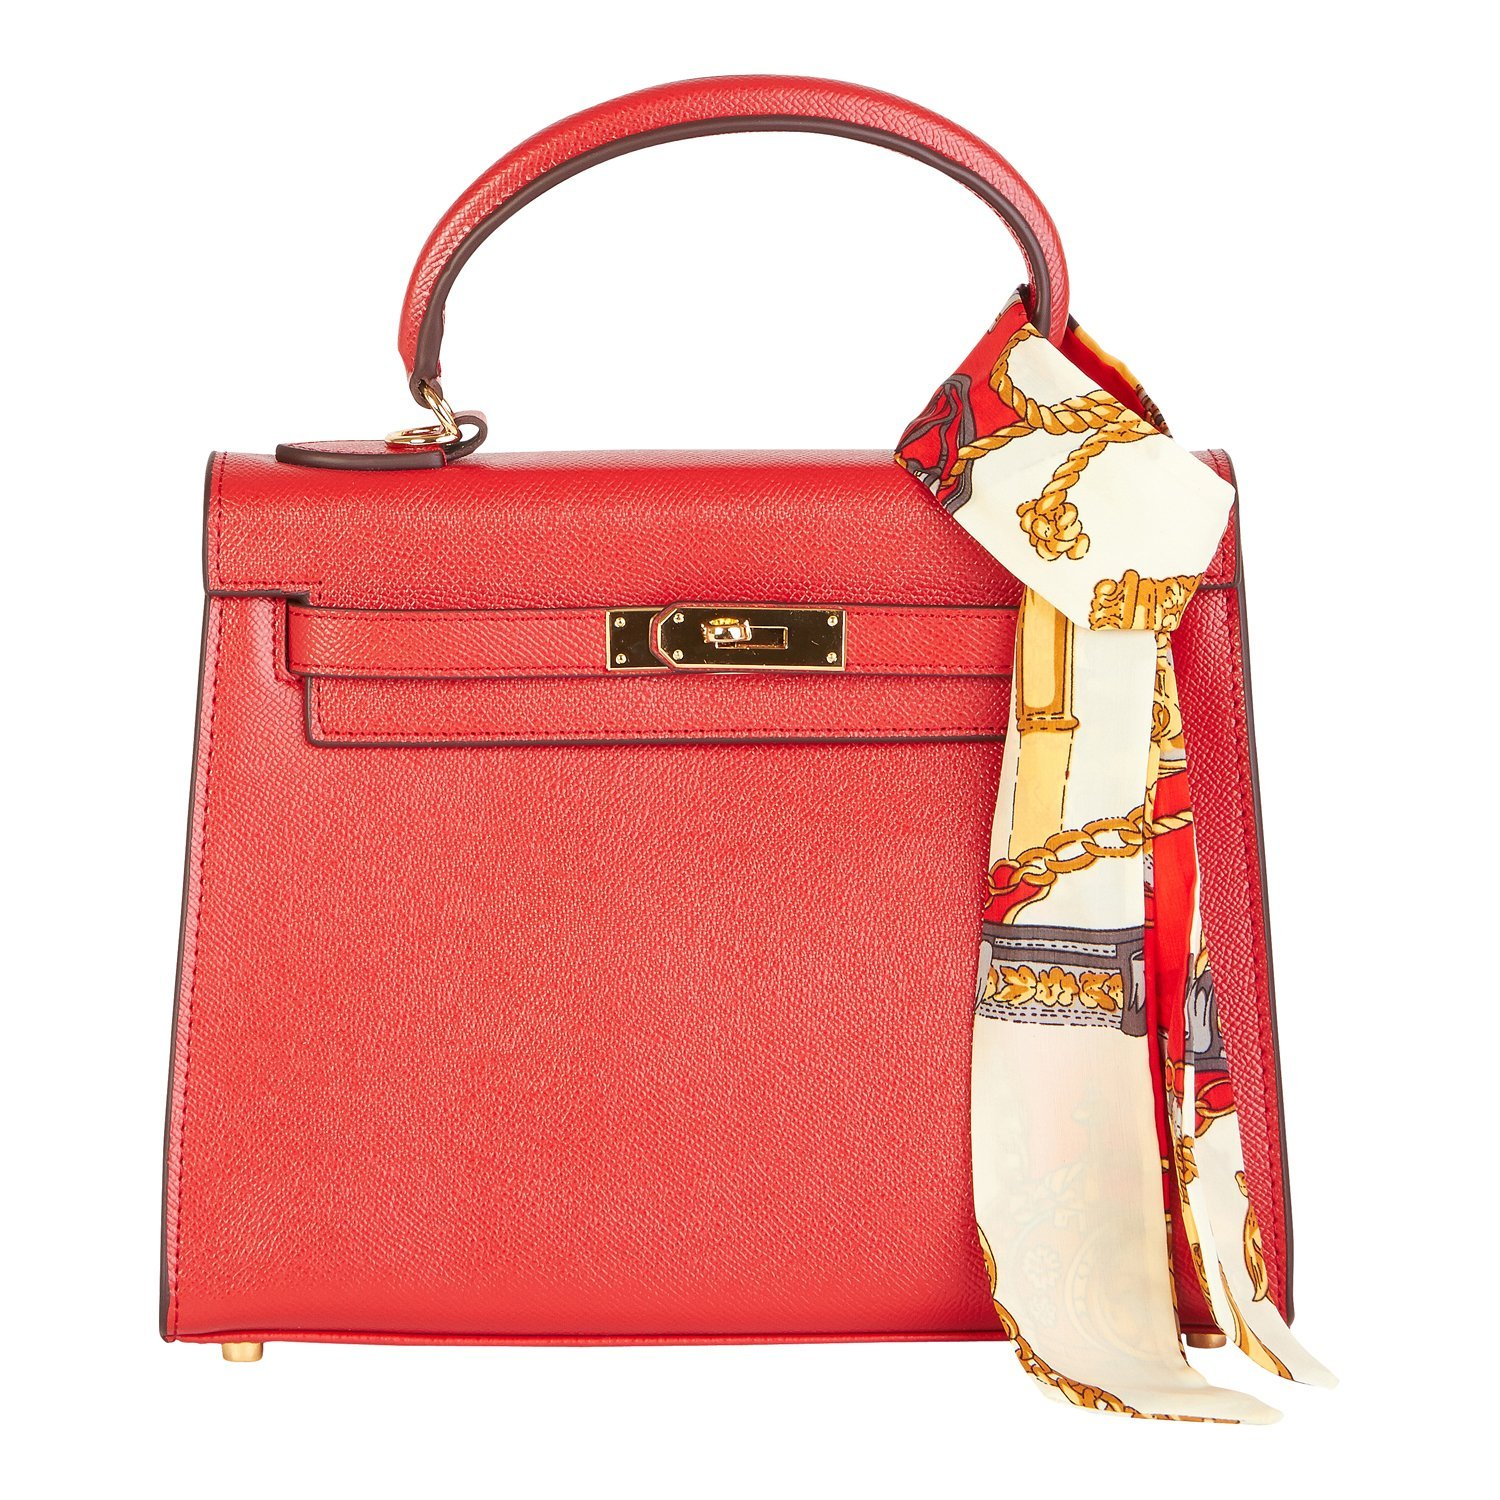 Beaute Bags Birk Padlock Frame Handbag Textured Red 100 percent Genuine Leather with Scarf